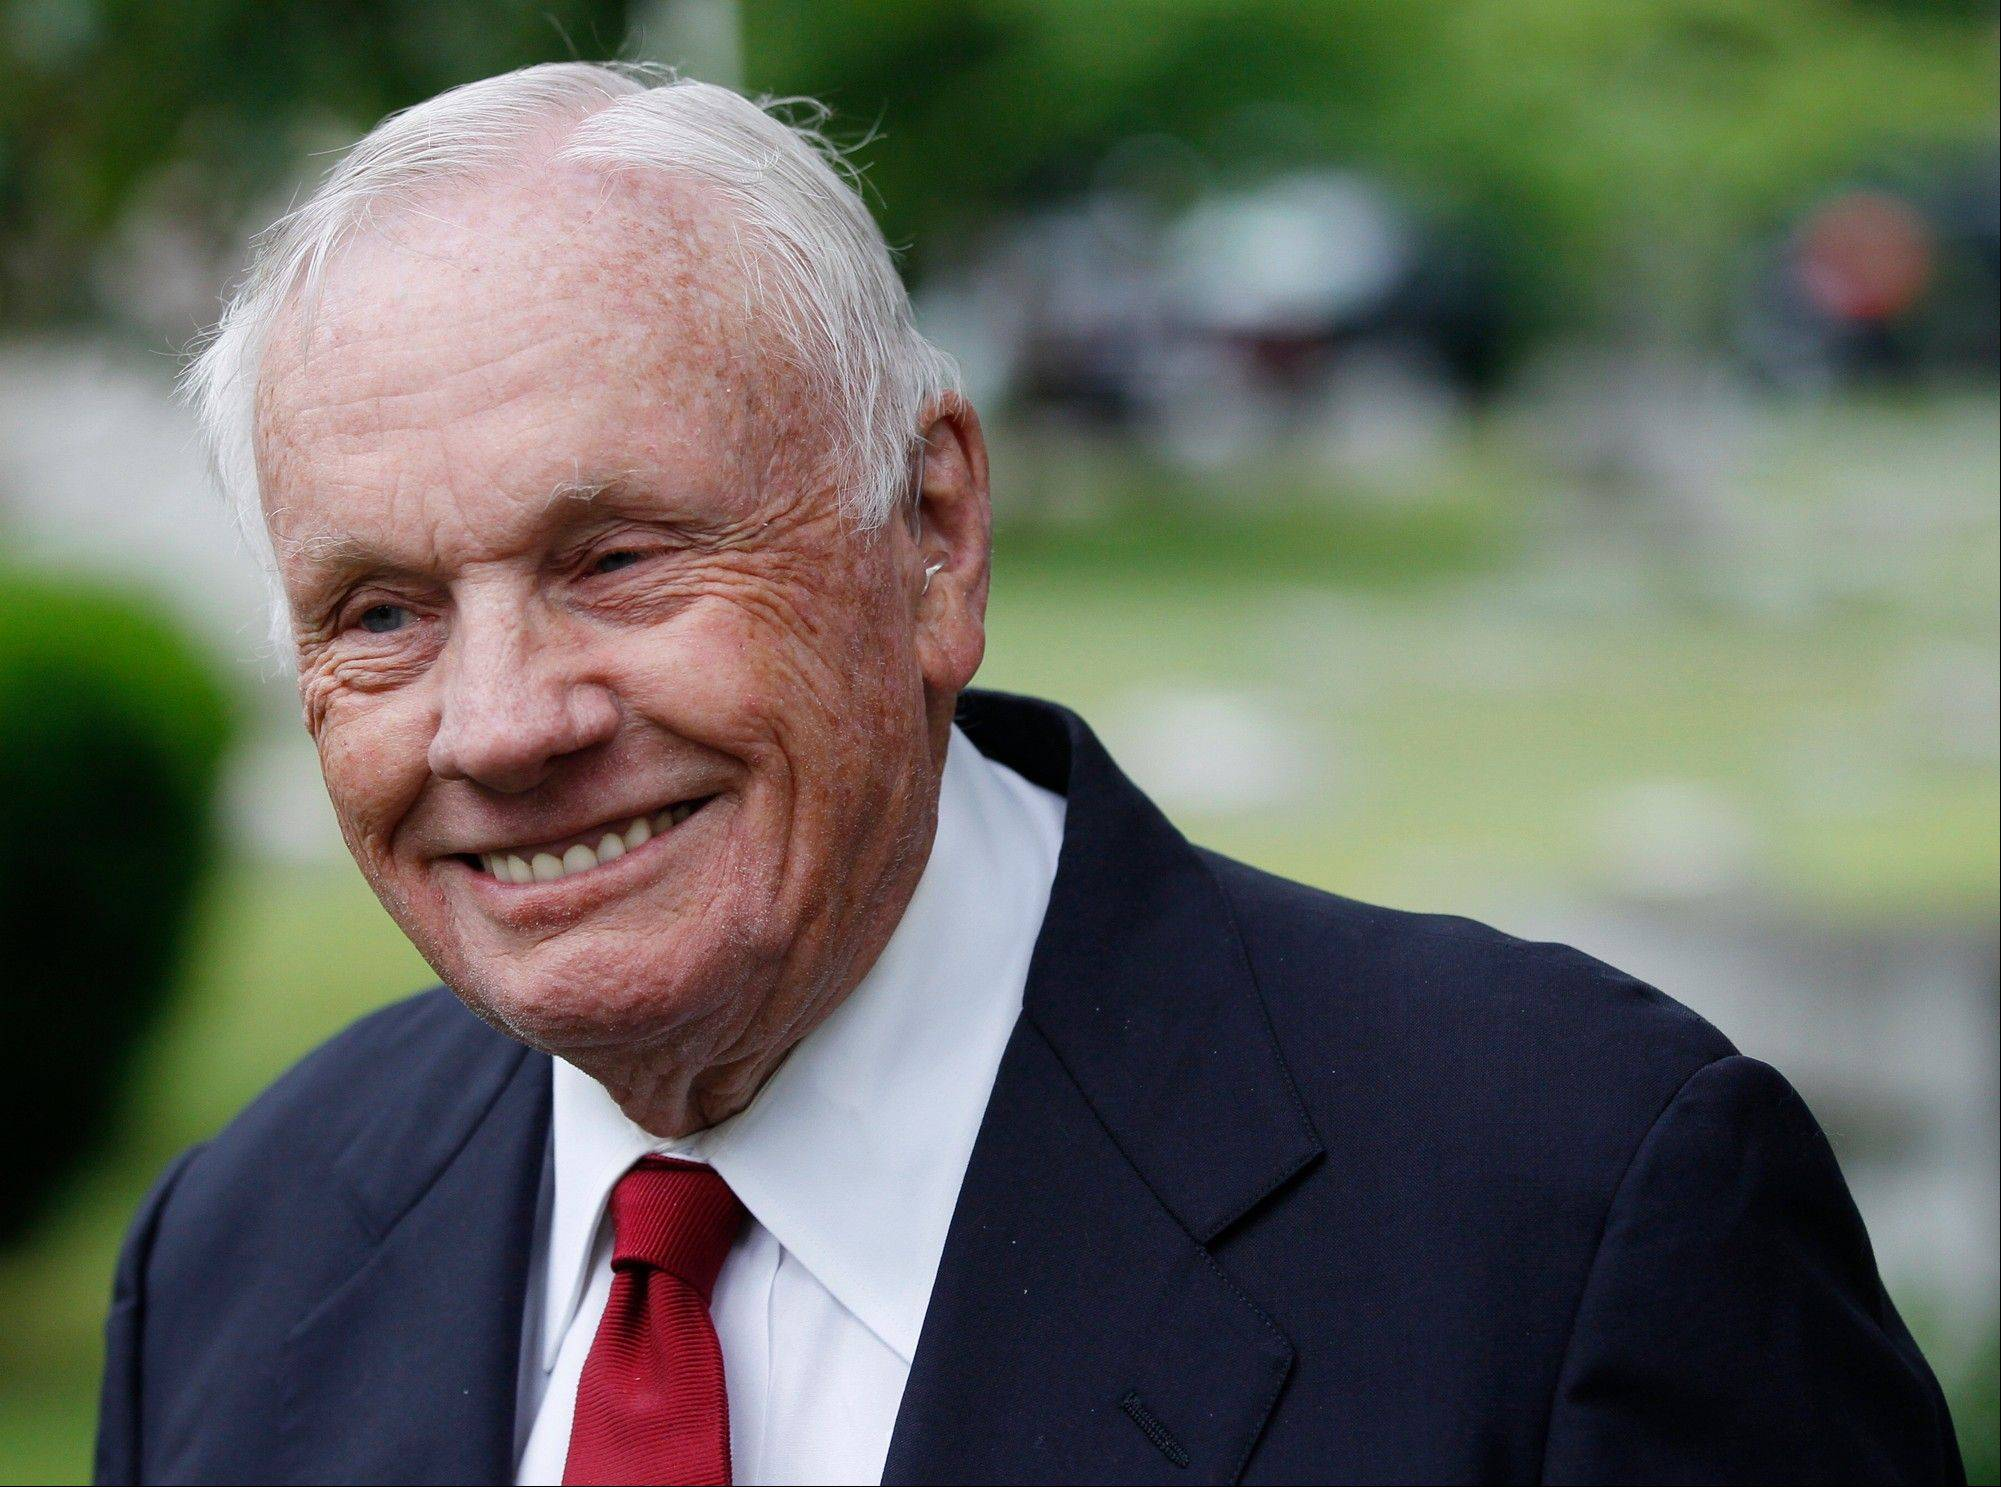 Purdue University plans to honor graduate Neil Armstrong�s achievements with a campus memorial service.